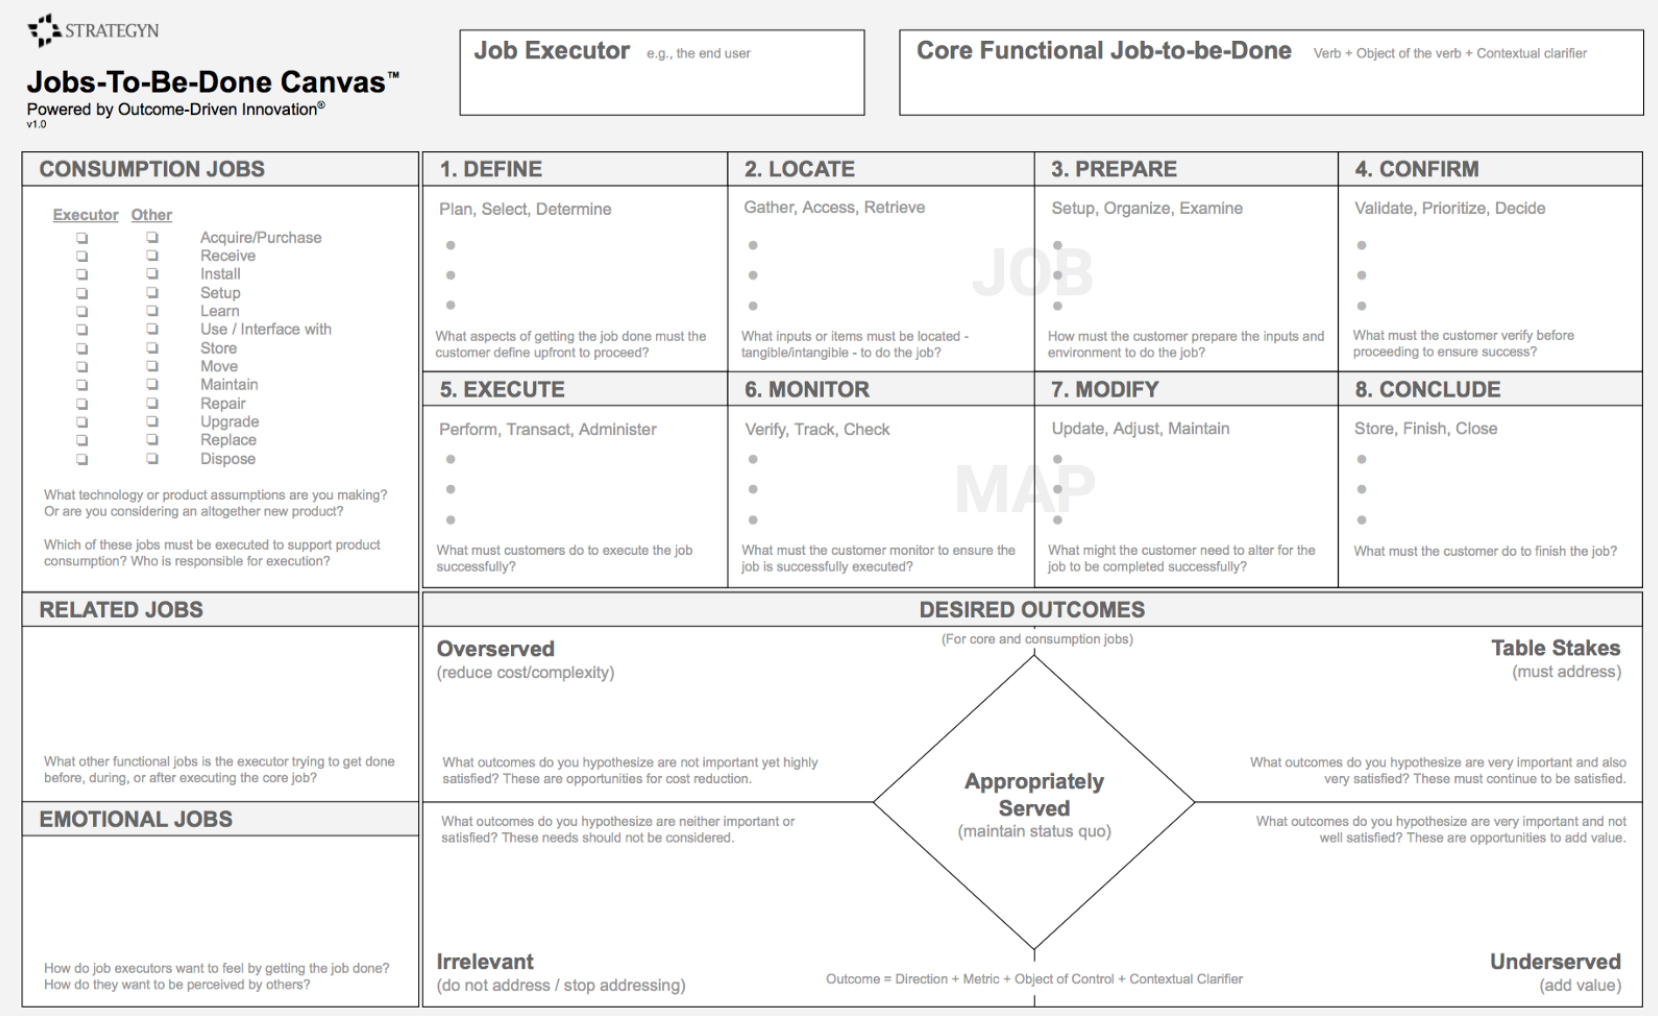 """DOWNLOAD: The Jobs-to-be-Done Canvas"" – Tony Ulwick"